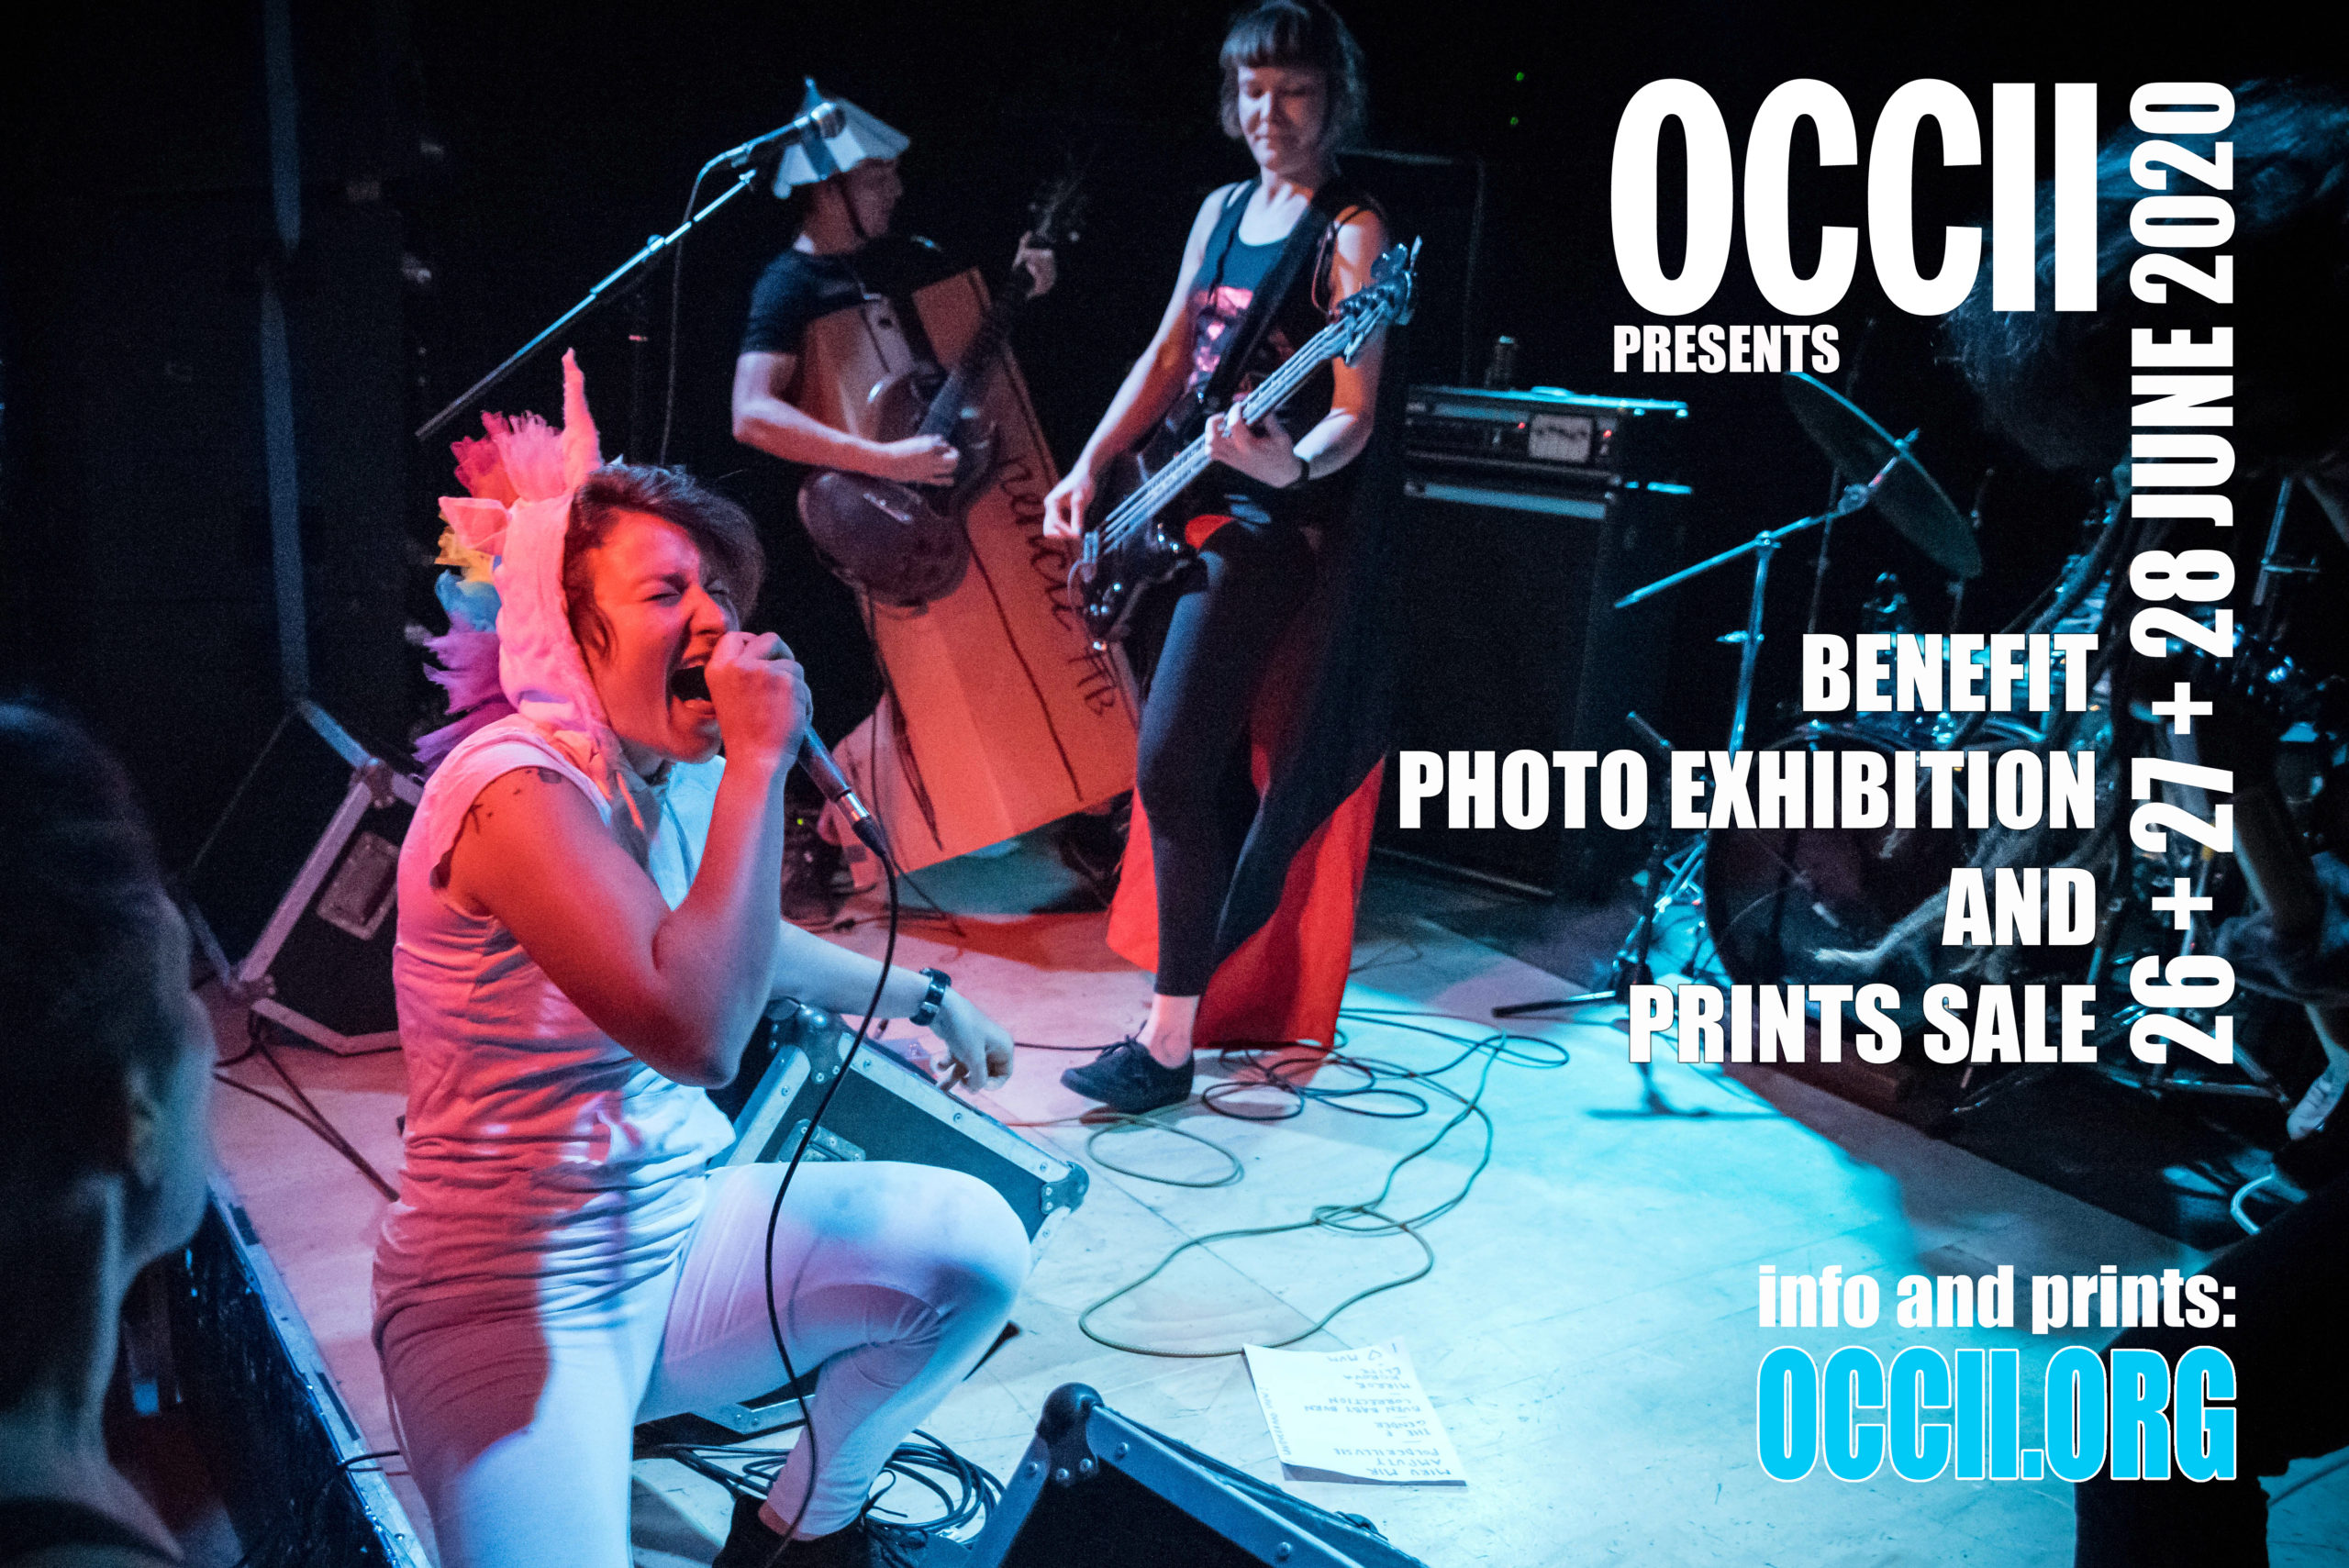 Benefit Exhibition and Print Sale at the OCCII